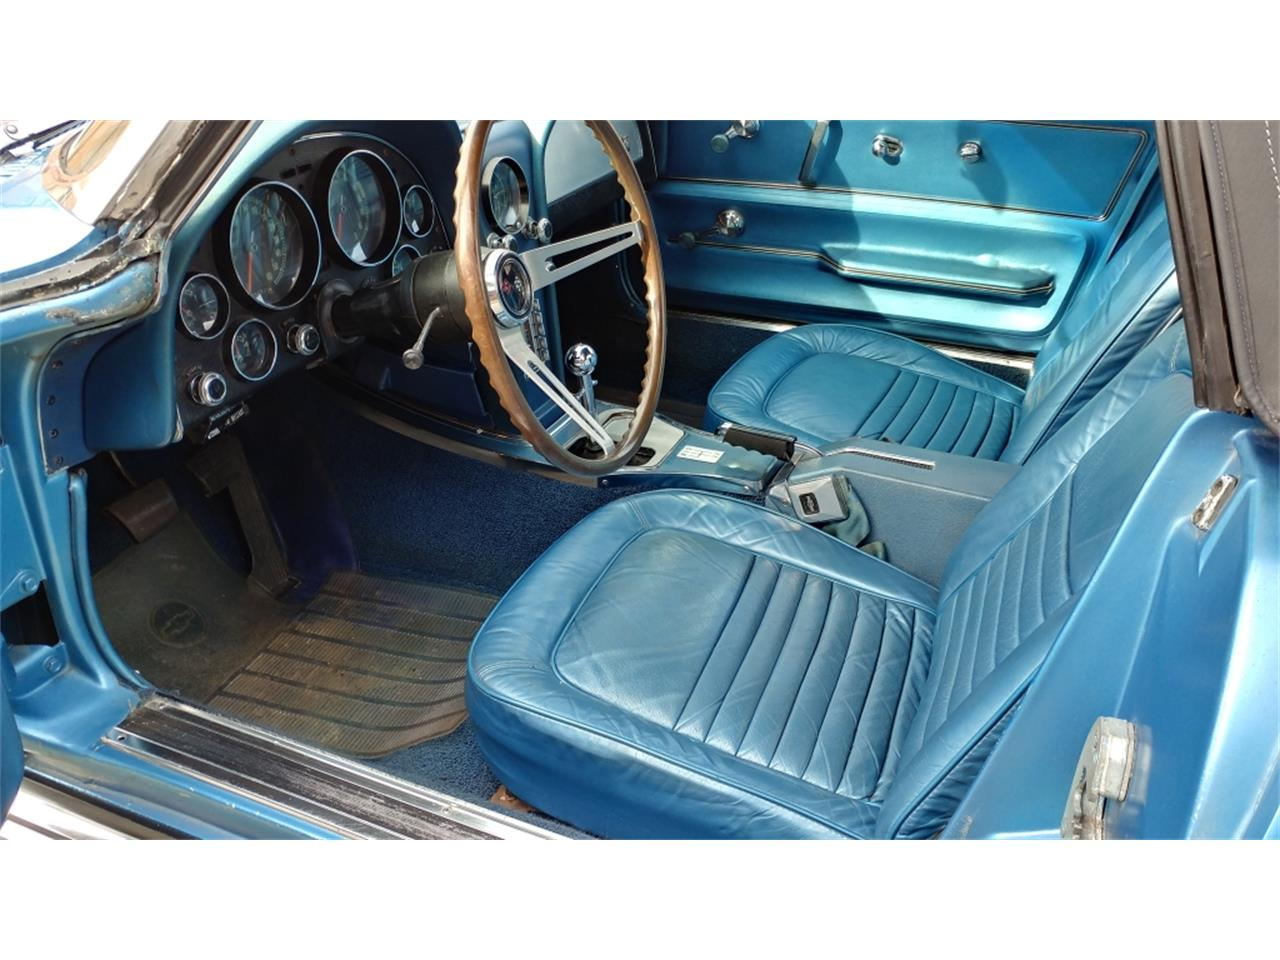 Large Picture of Classic '67 Chevrolet Corvette located in N. Kansas City Missouri - $69,500.00 Offered by Vintage Vettes, LLC - MO2L